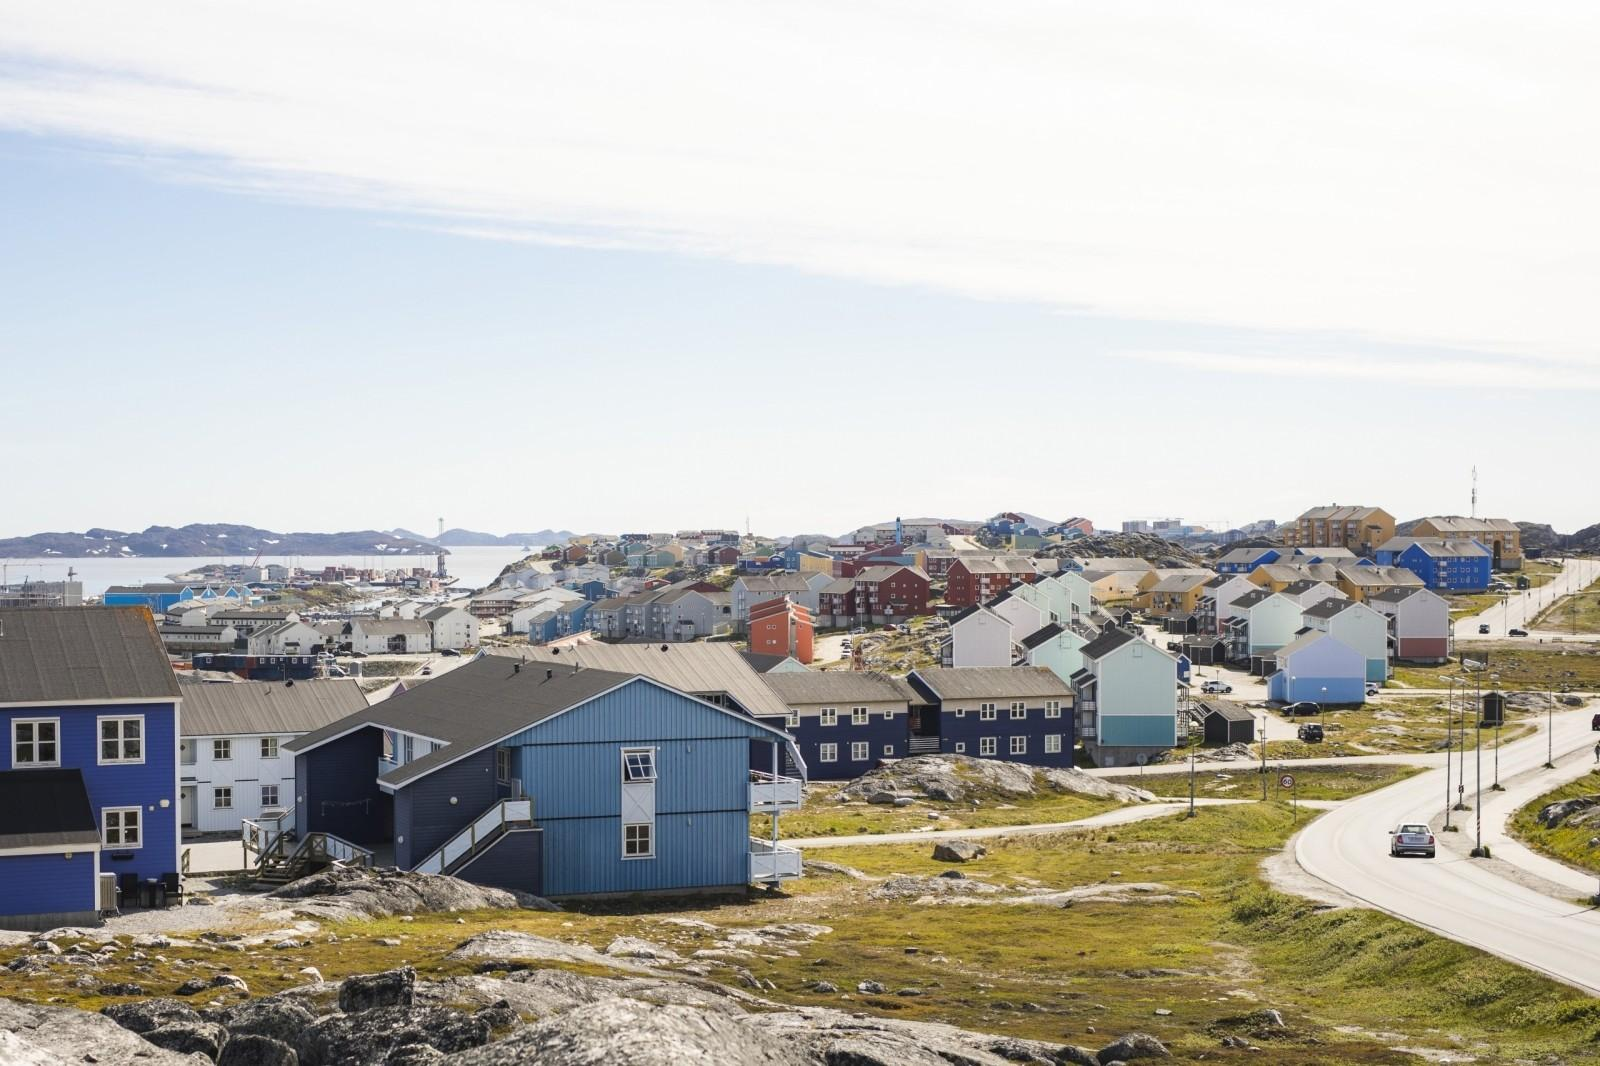 After-Sunrise over Nussuaq in Nuuk